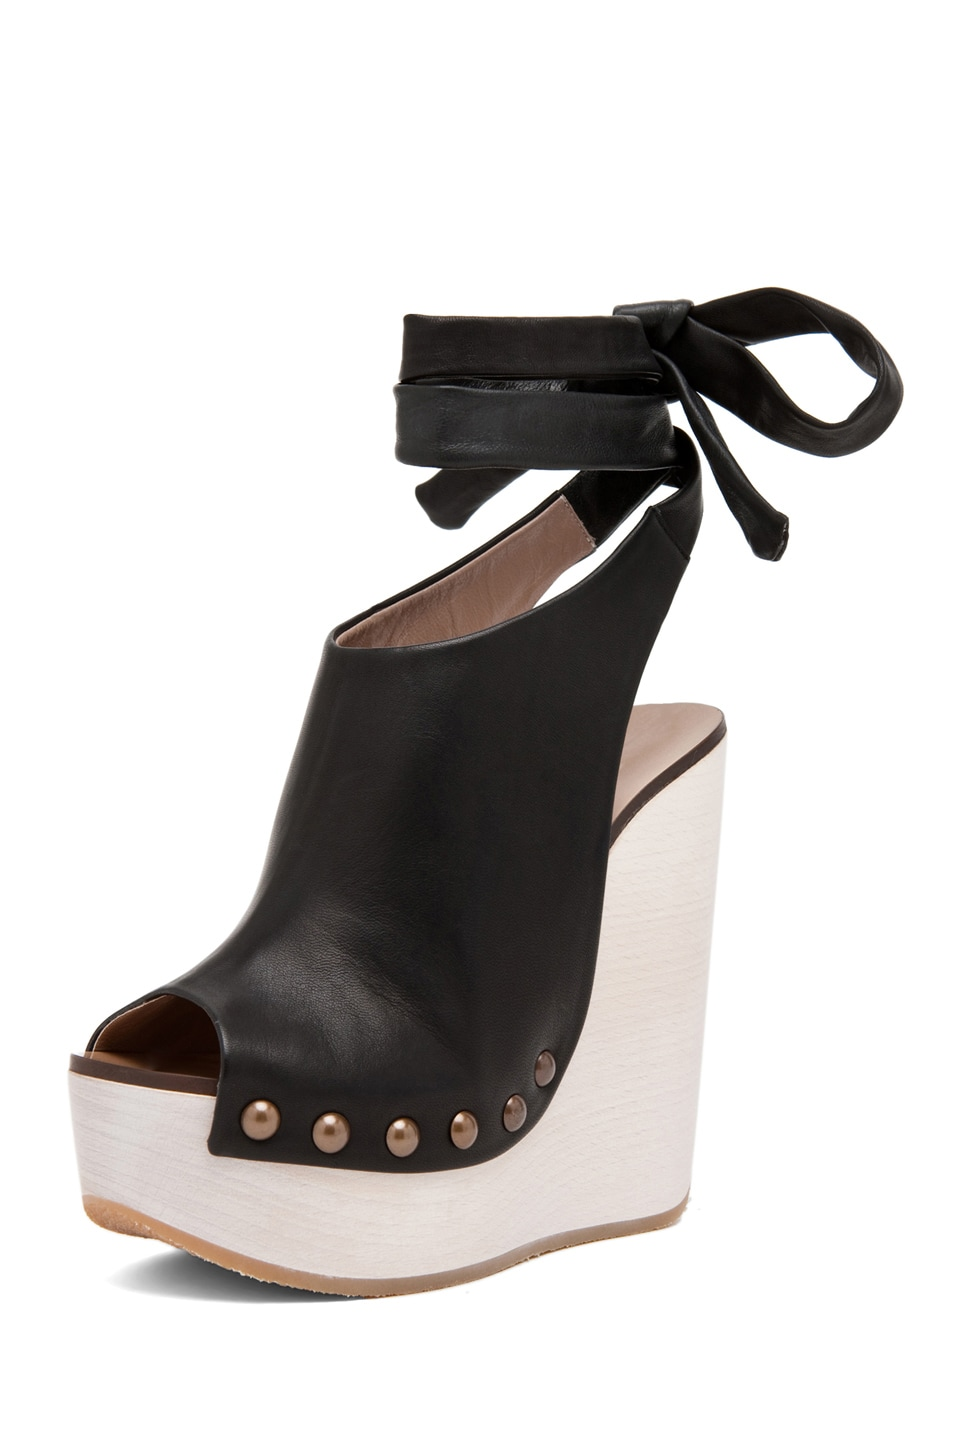 Image 2 of Chloe Leather Wrap Around Wedges in Black